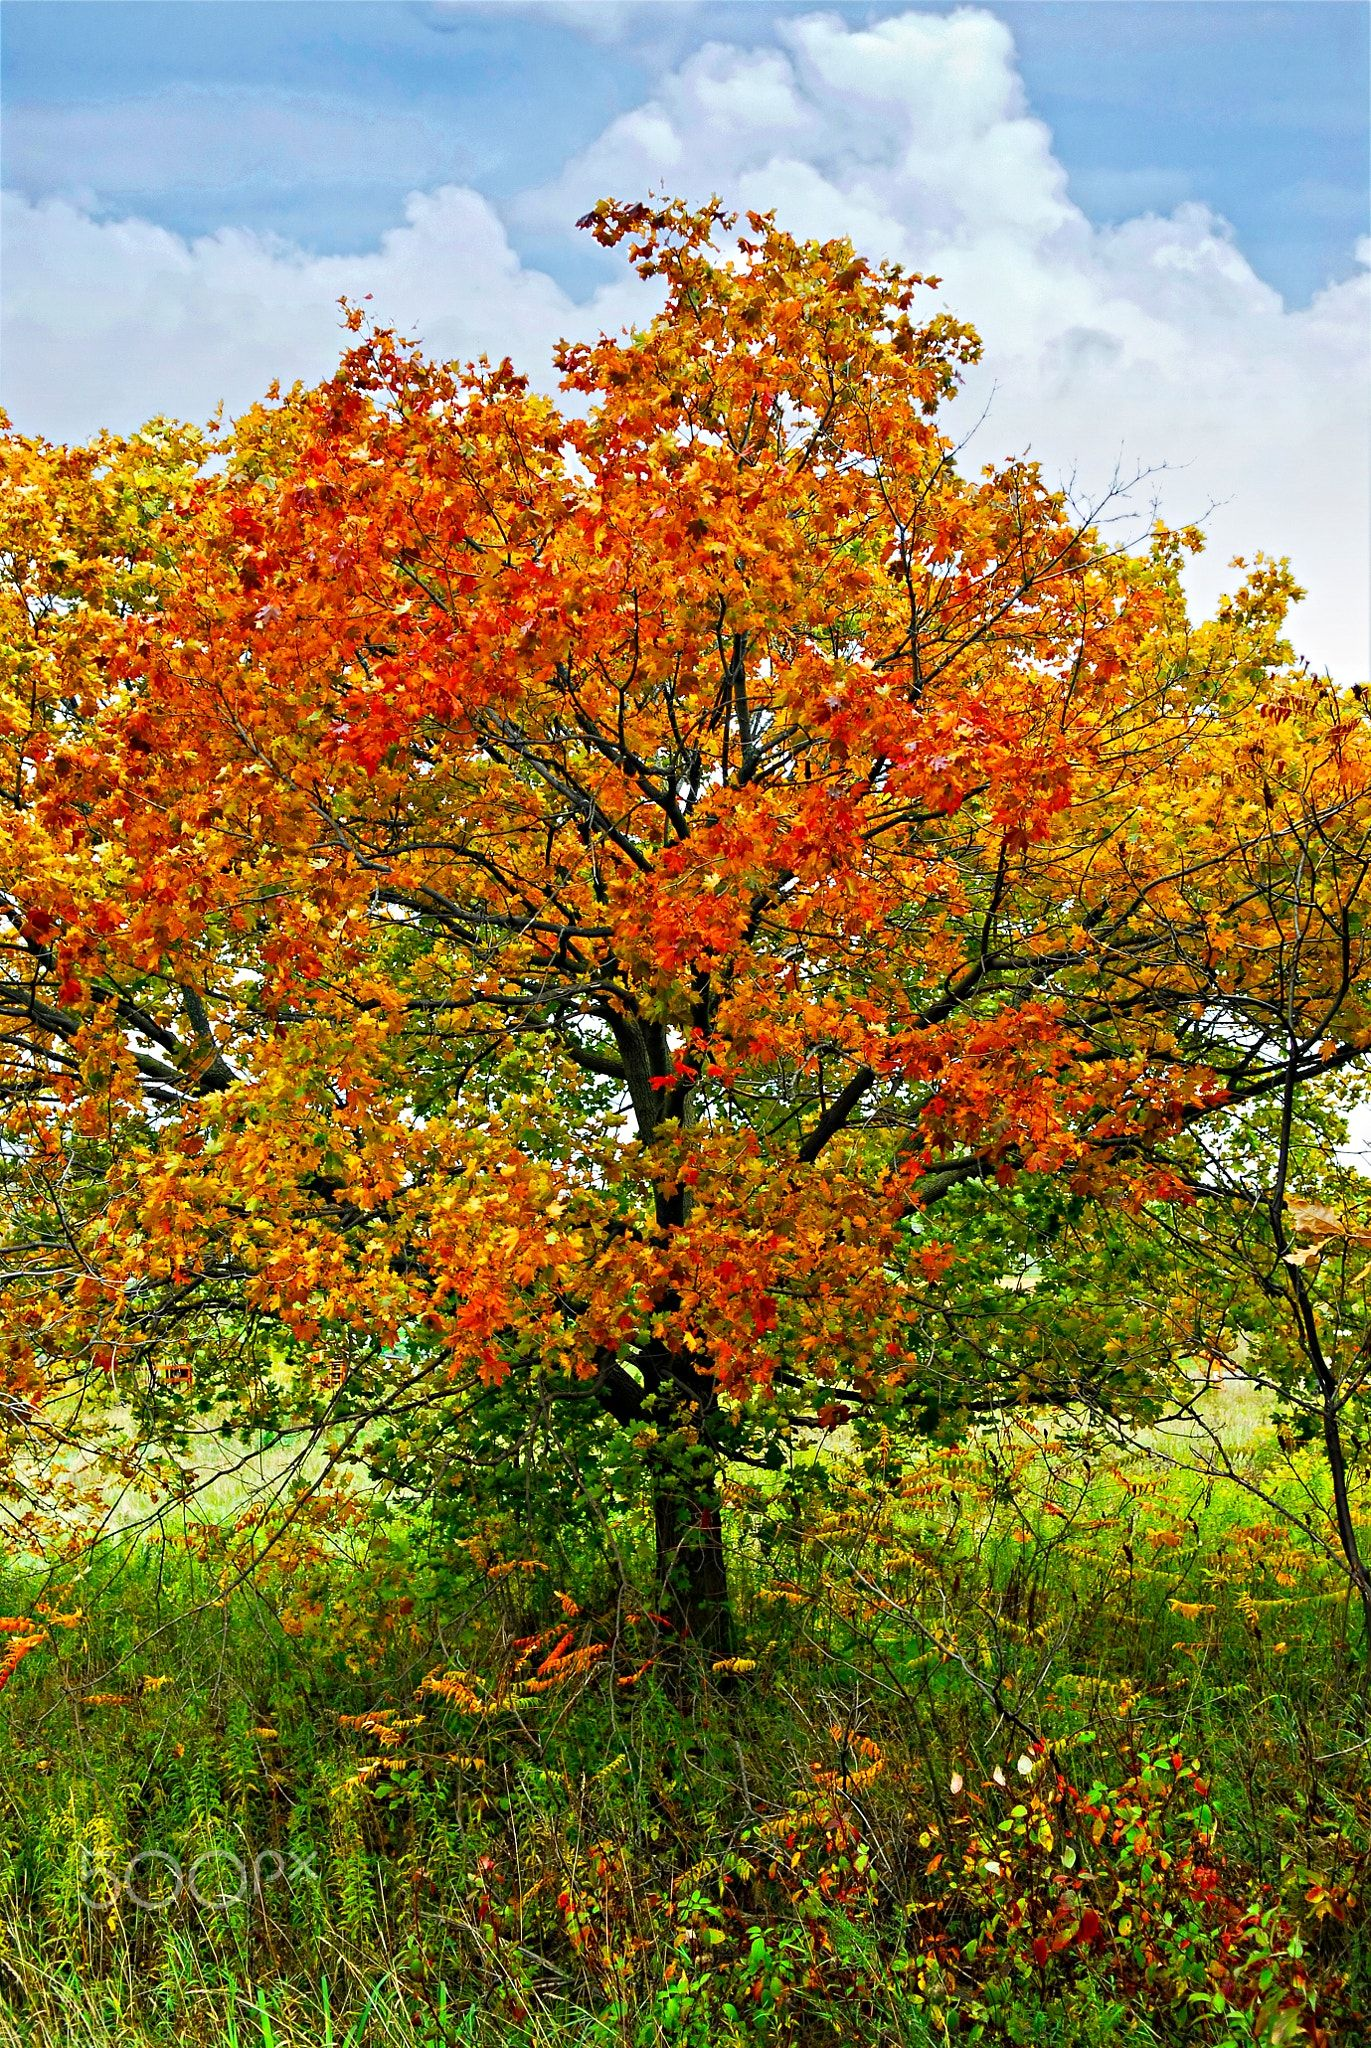 Autumn Maple Tree Beautiful Maple Tree With Red Foliage In Early Fall Summer Trees Autumn Trees Maple Tree